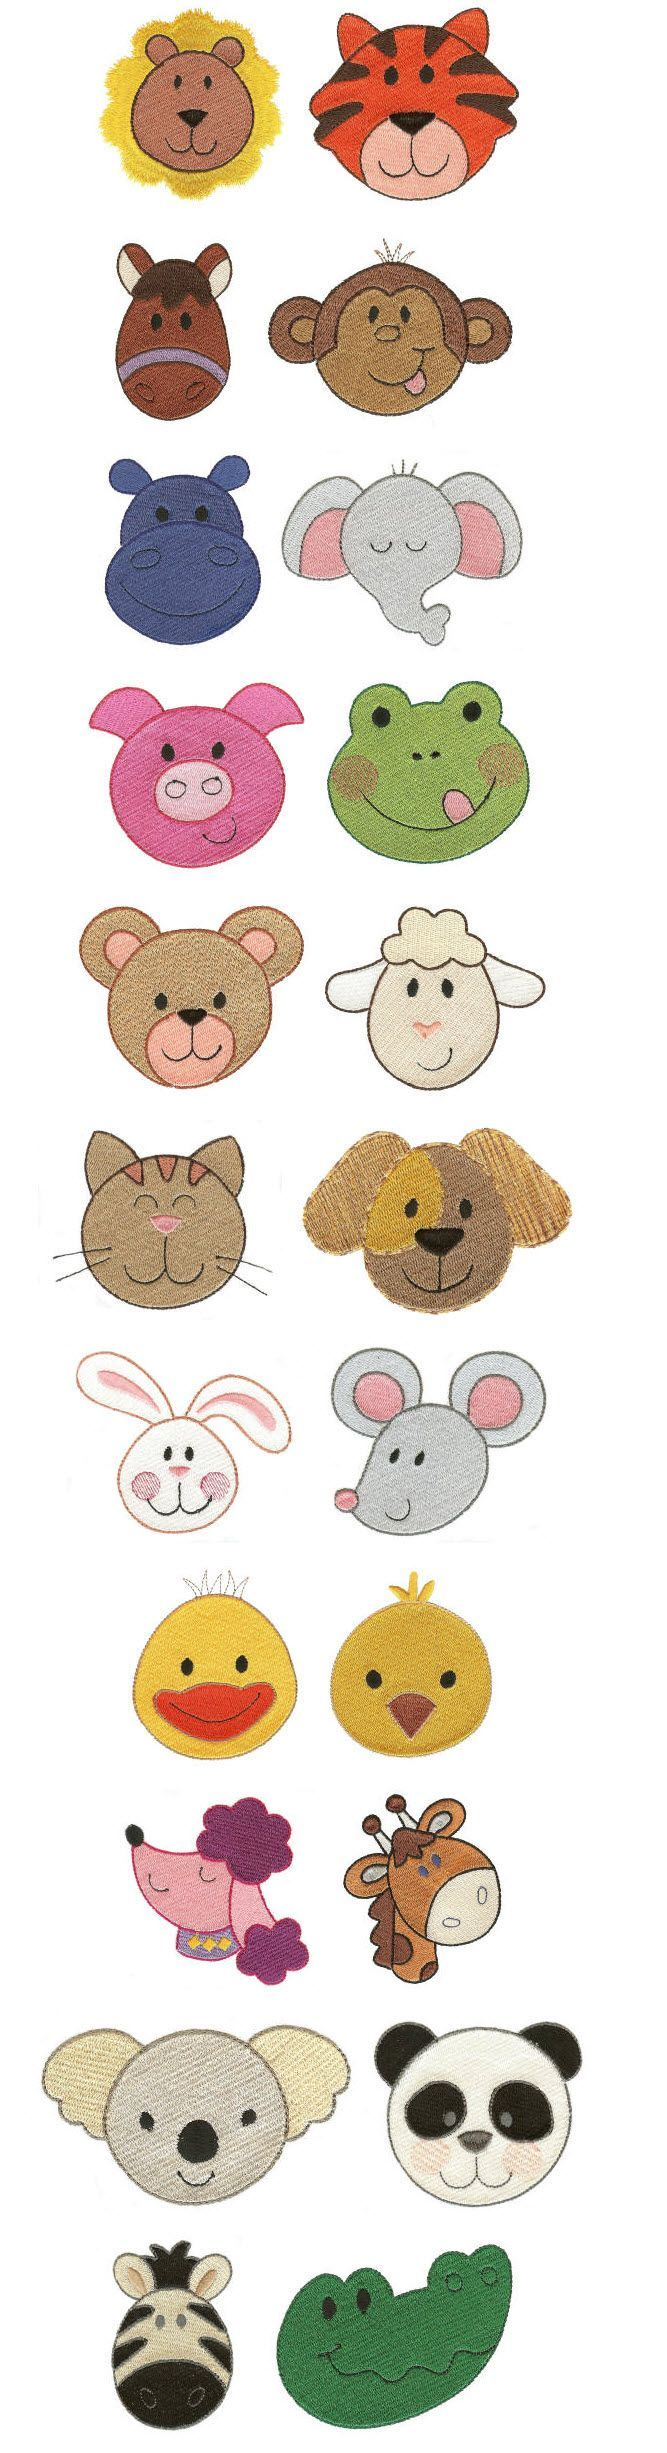 best images about animal stencil ideas on pinterest digital